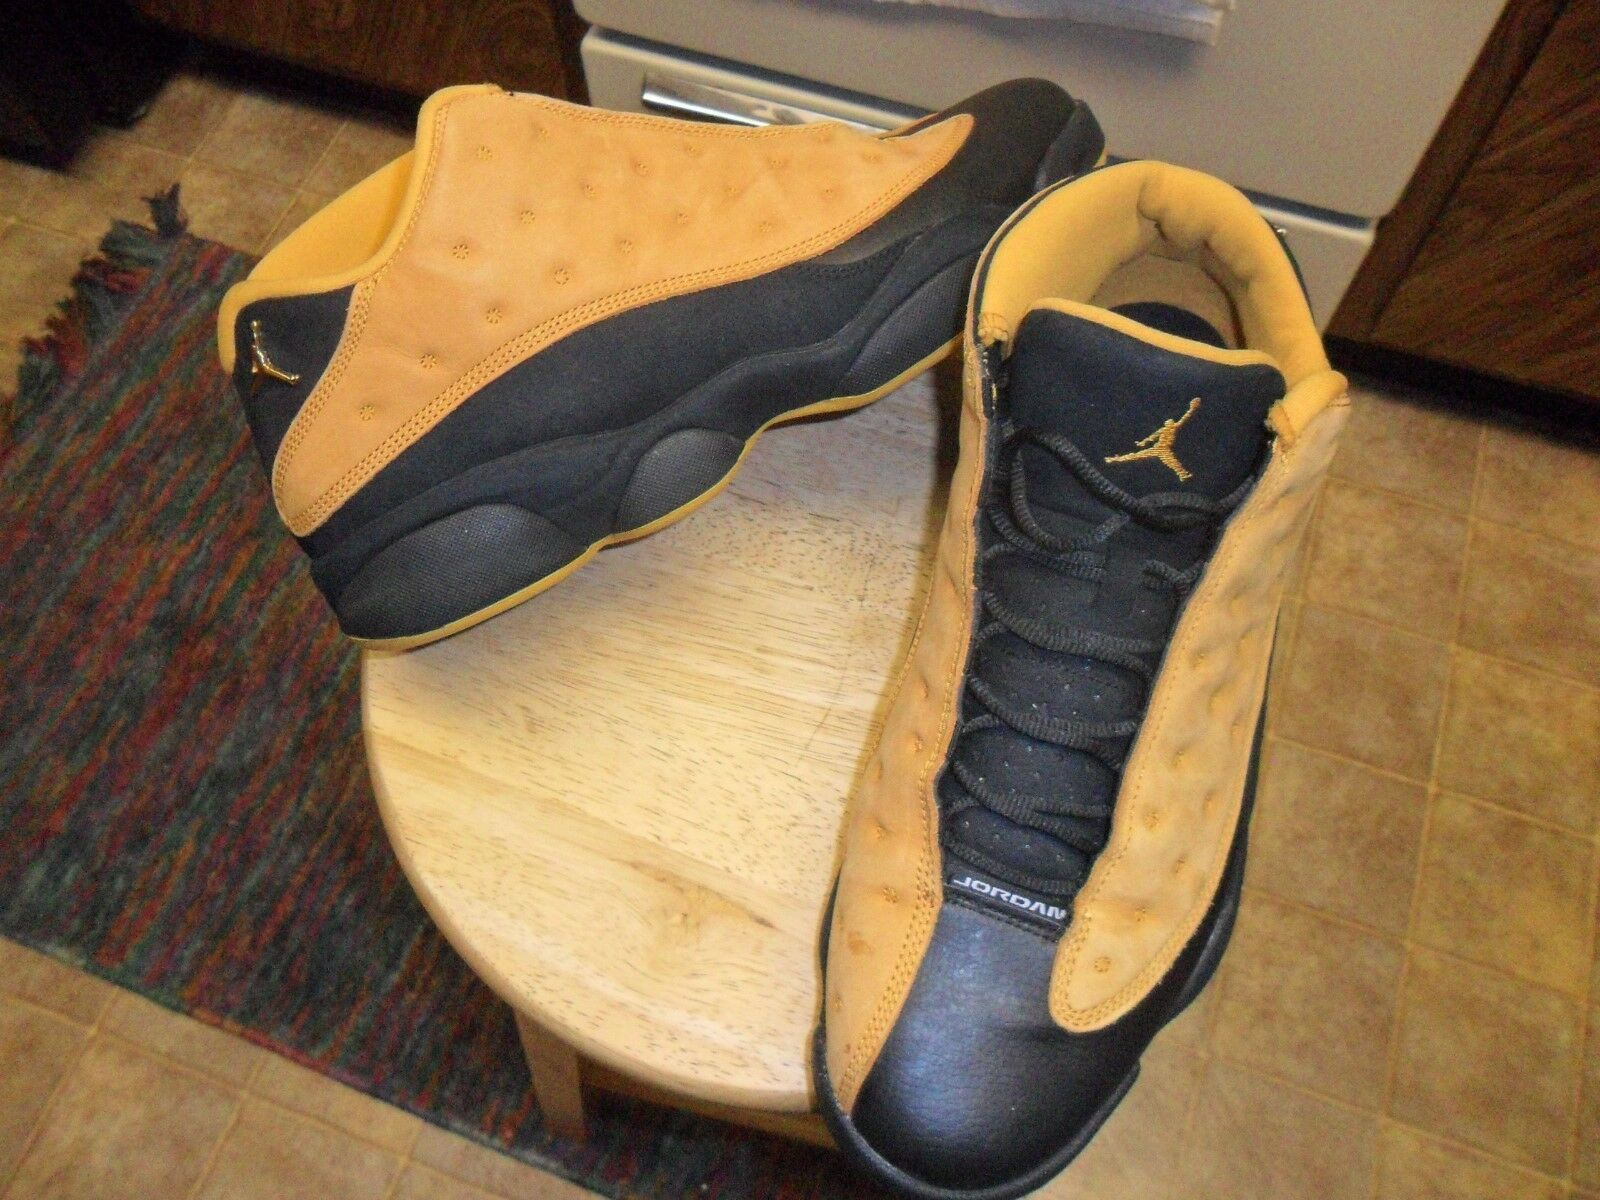 Jordan 13 XIII Retro Low Chutney 2017 Black/ Wheat 310810-022 Sz13 New shoes for men and women, limited time discount